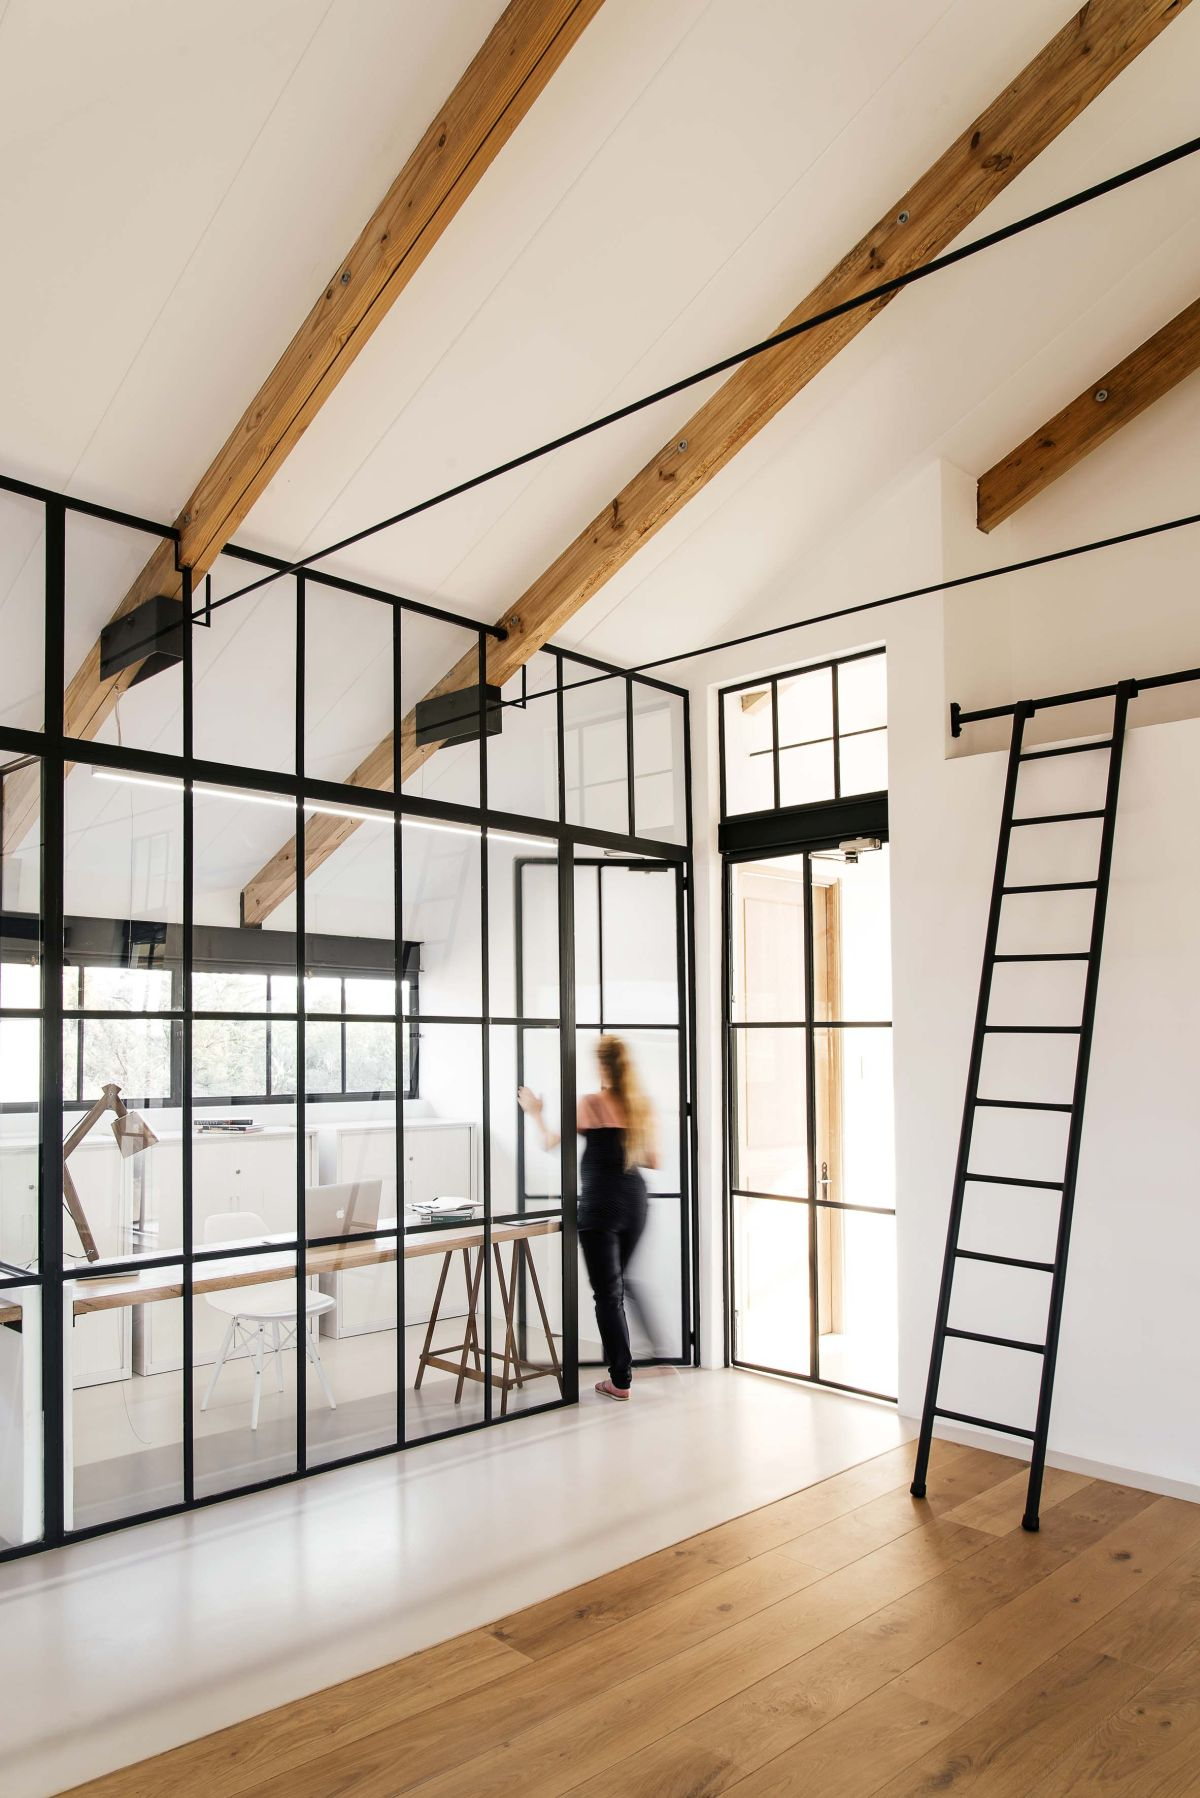 Glass walls and partitions matching the facade walls seamlessly connect various sections of the house